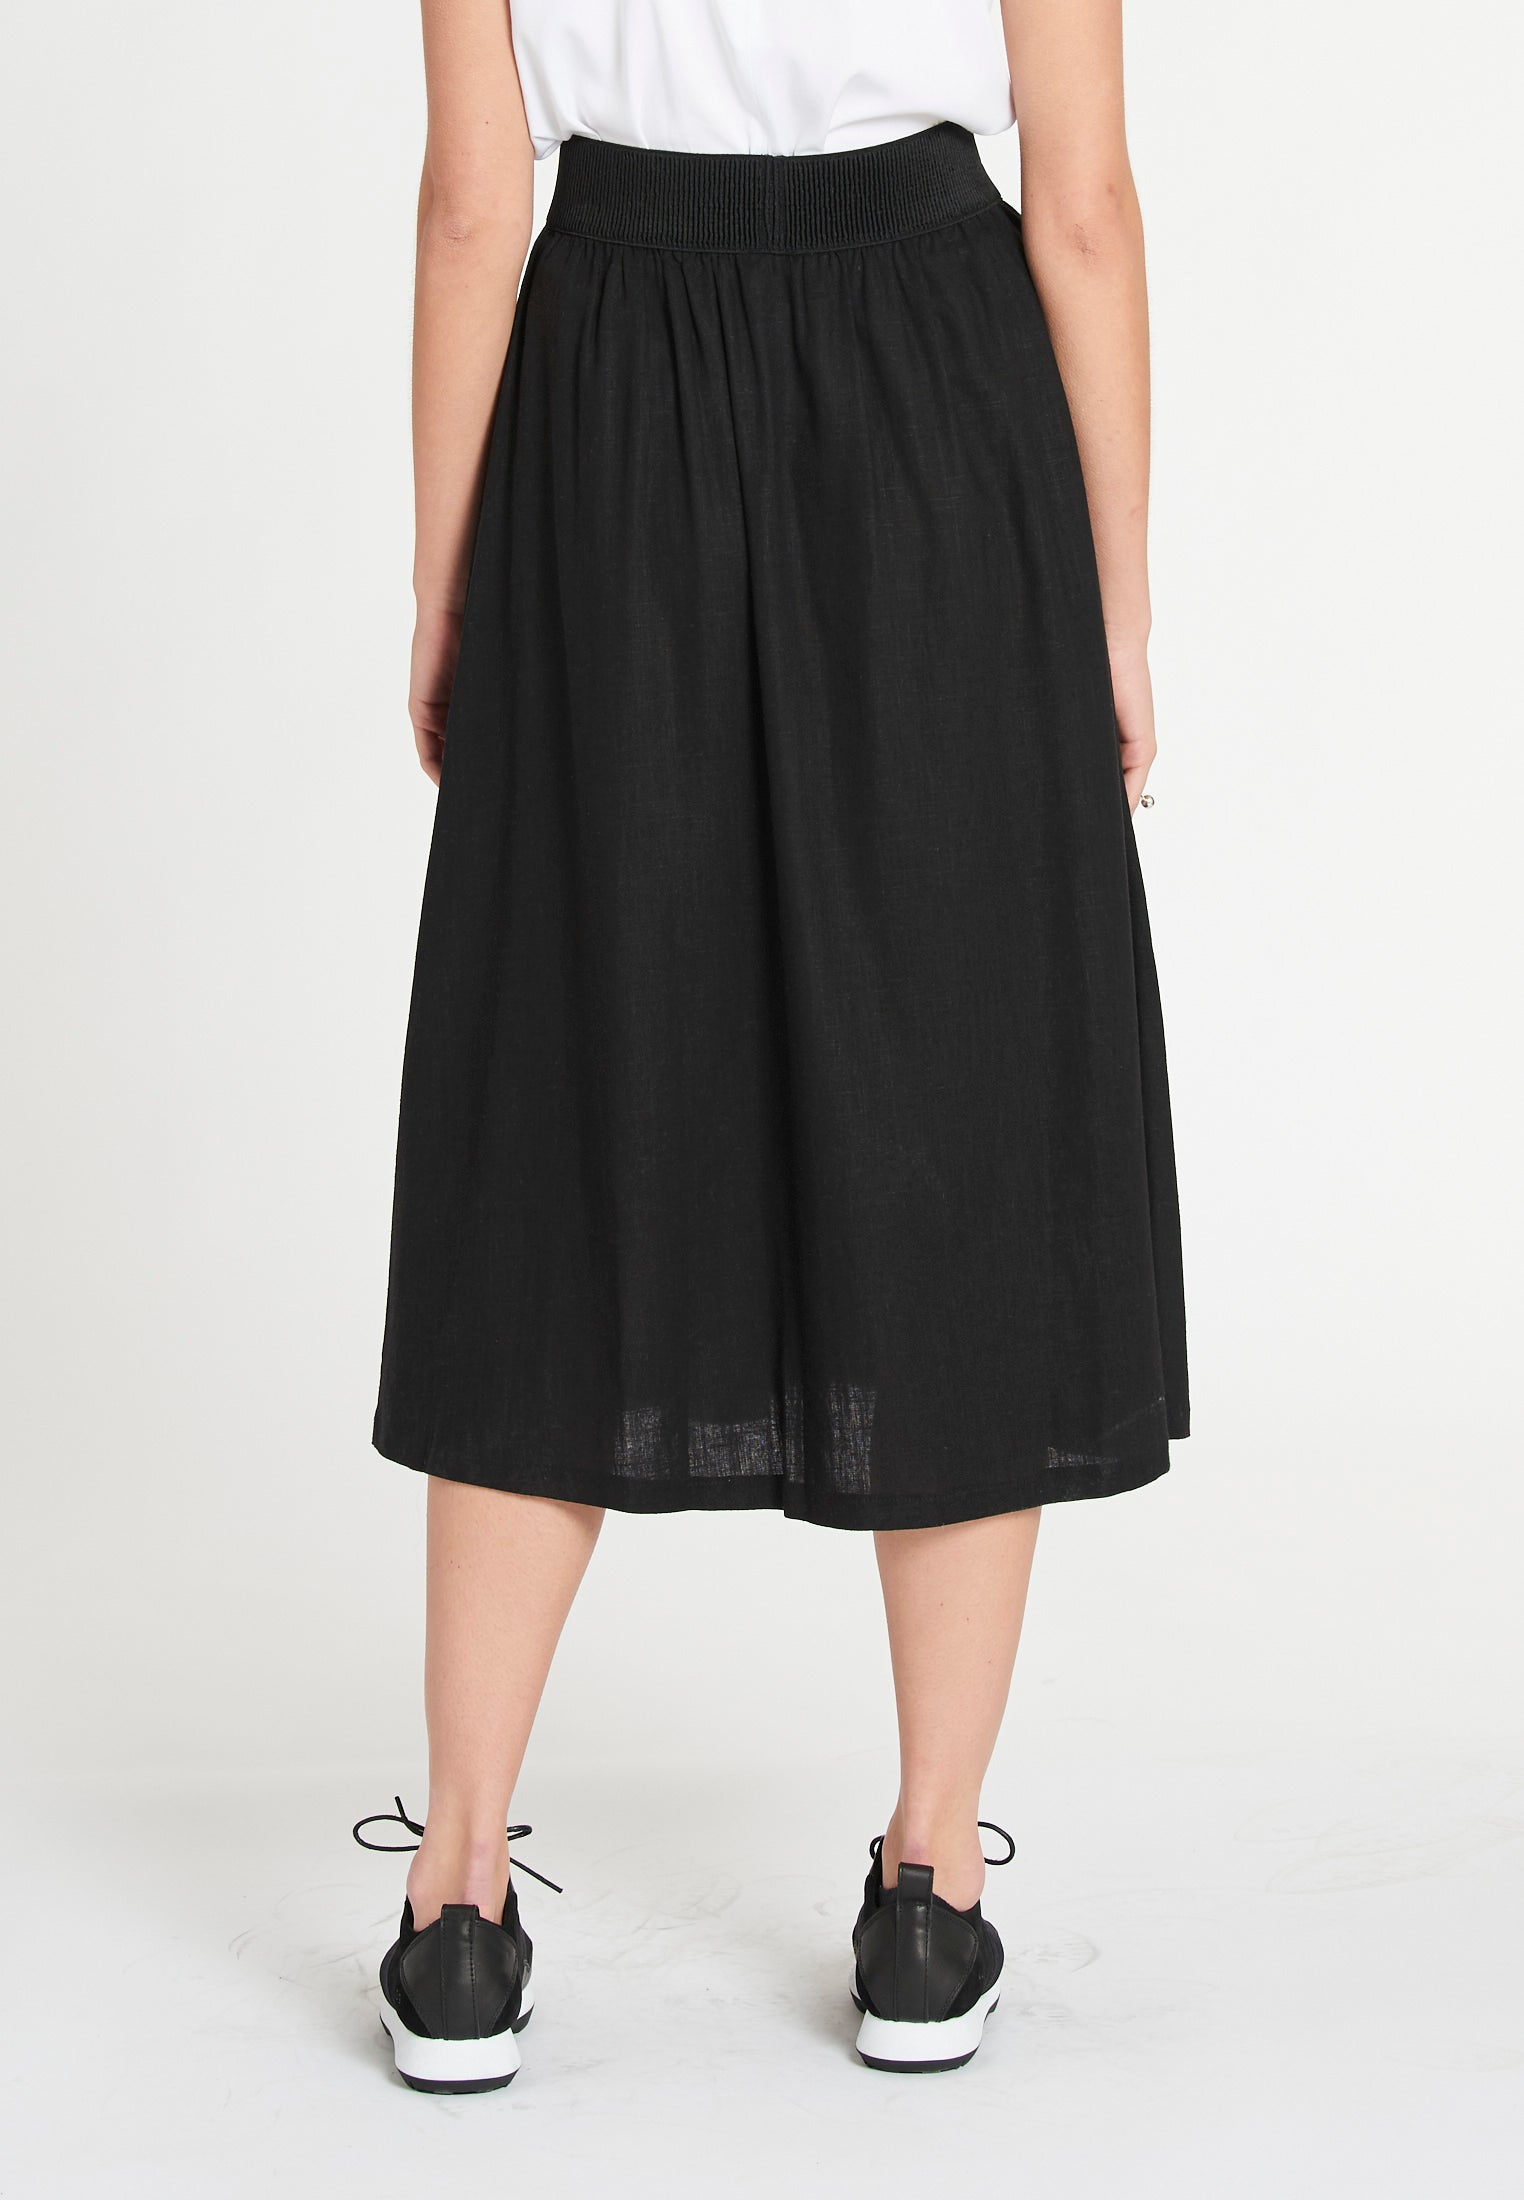 Rhym Linen Soft Black